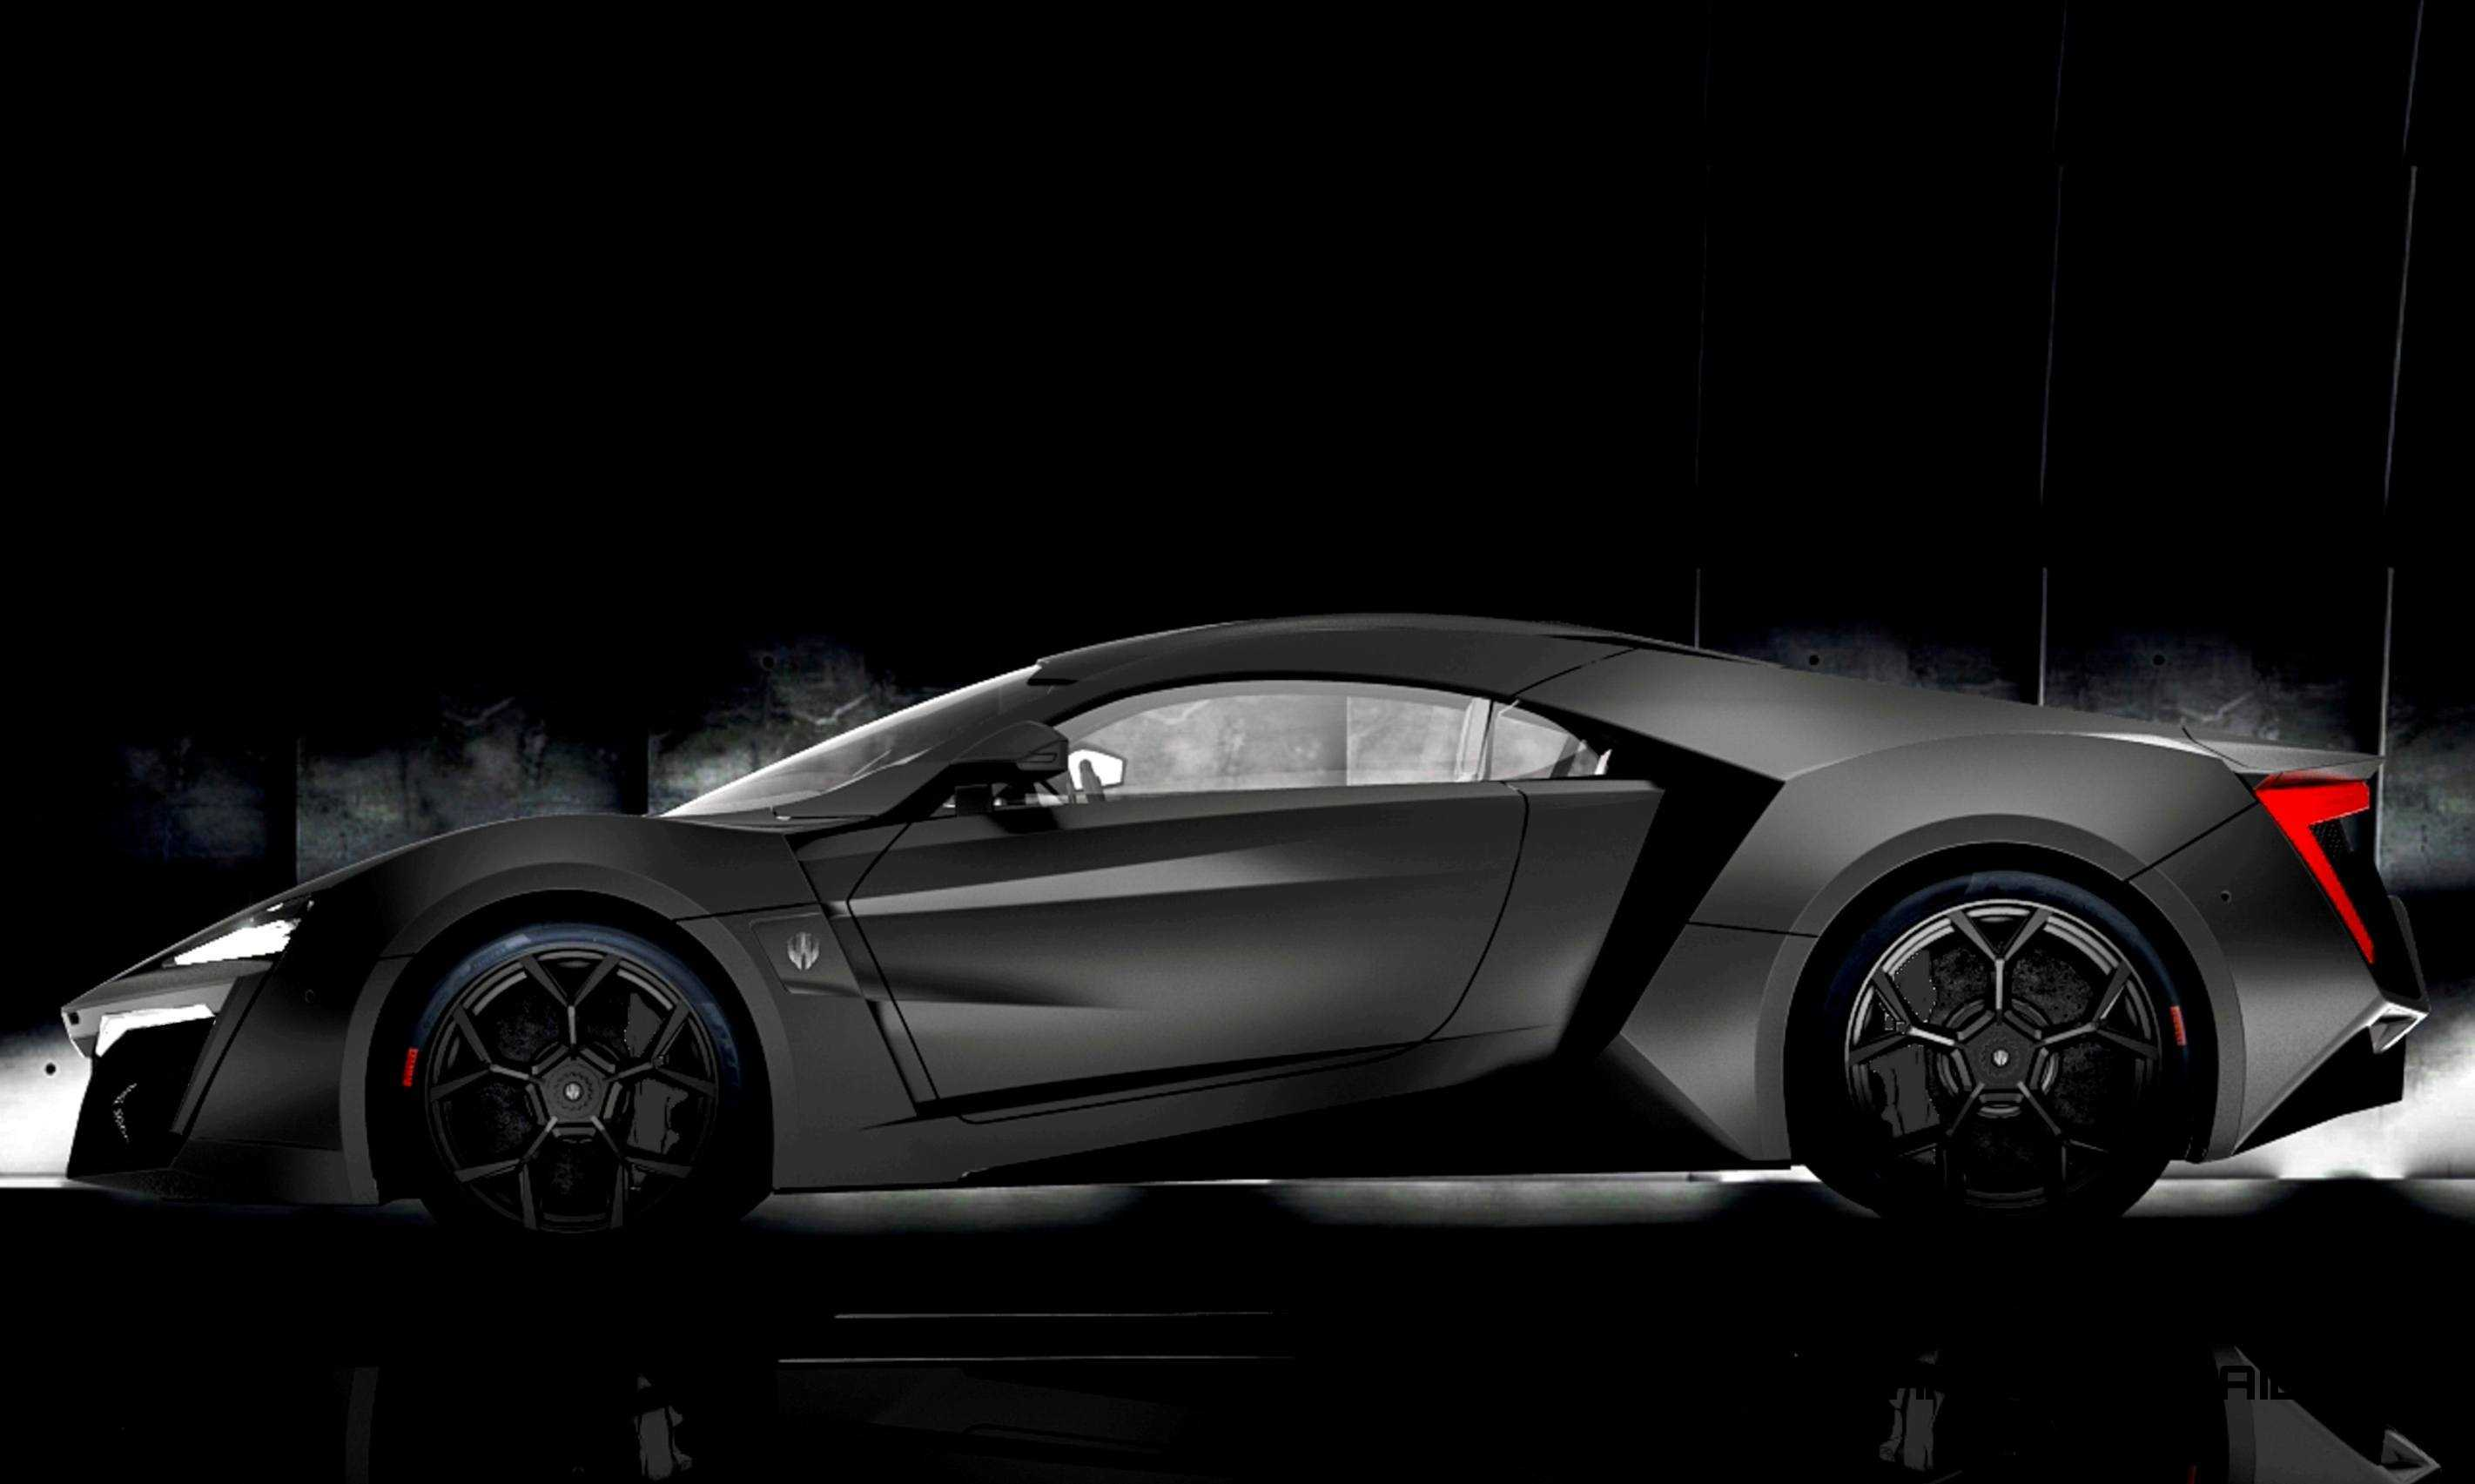 2014 W Motors Lykan Hypersport In 40+ Amazing New Wallpapers, Including  MegaLux Interior